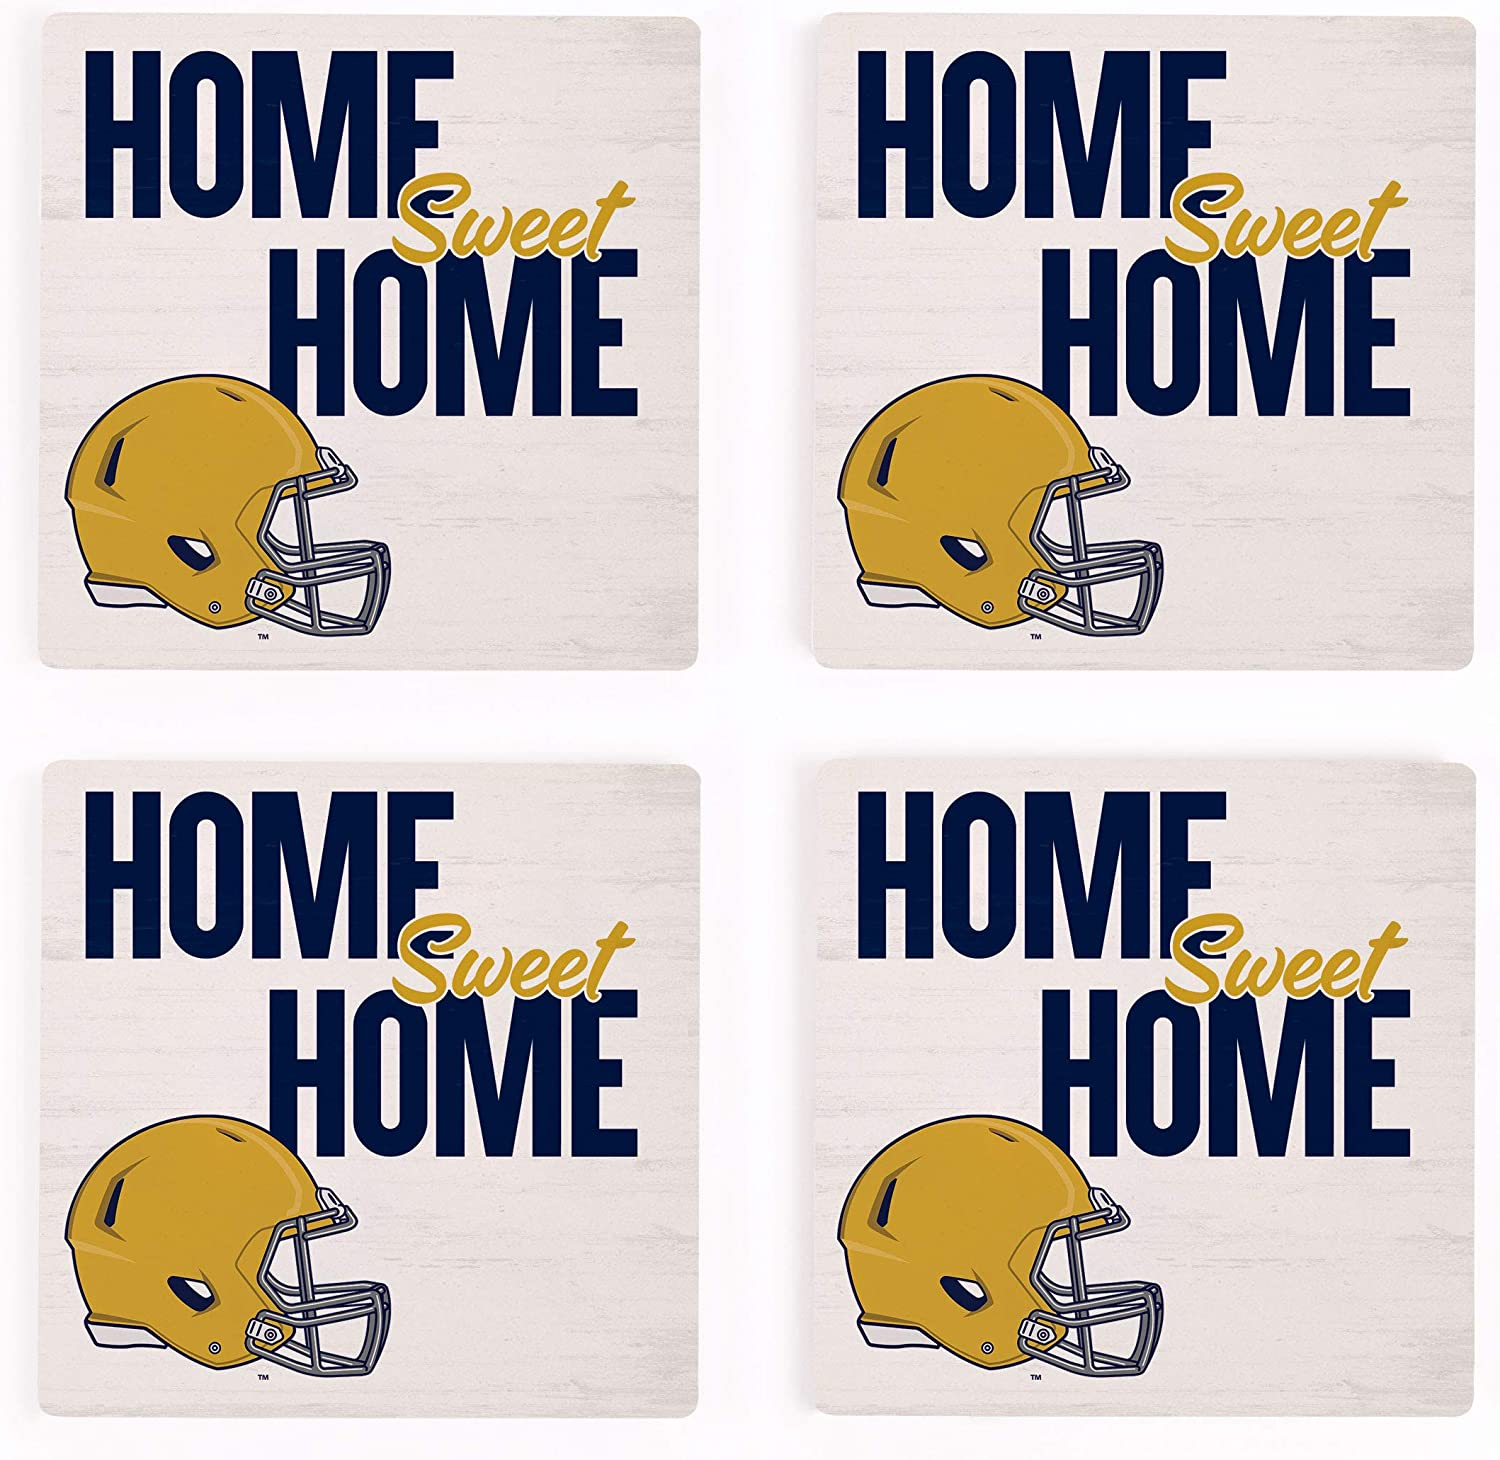 Home Sweet Home Notre Dame Fighting Irish NCAA 4 x 4 Absorbent Ceramic Coasters Pack of 4